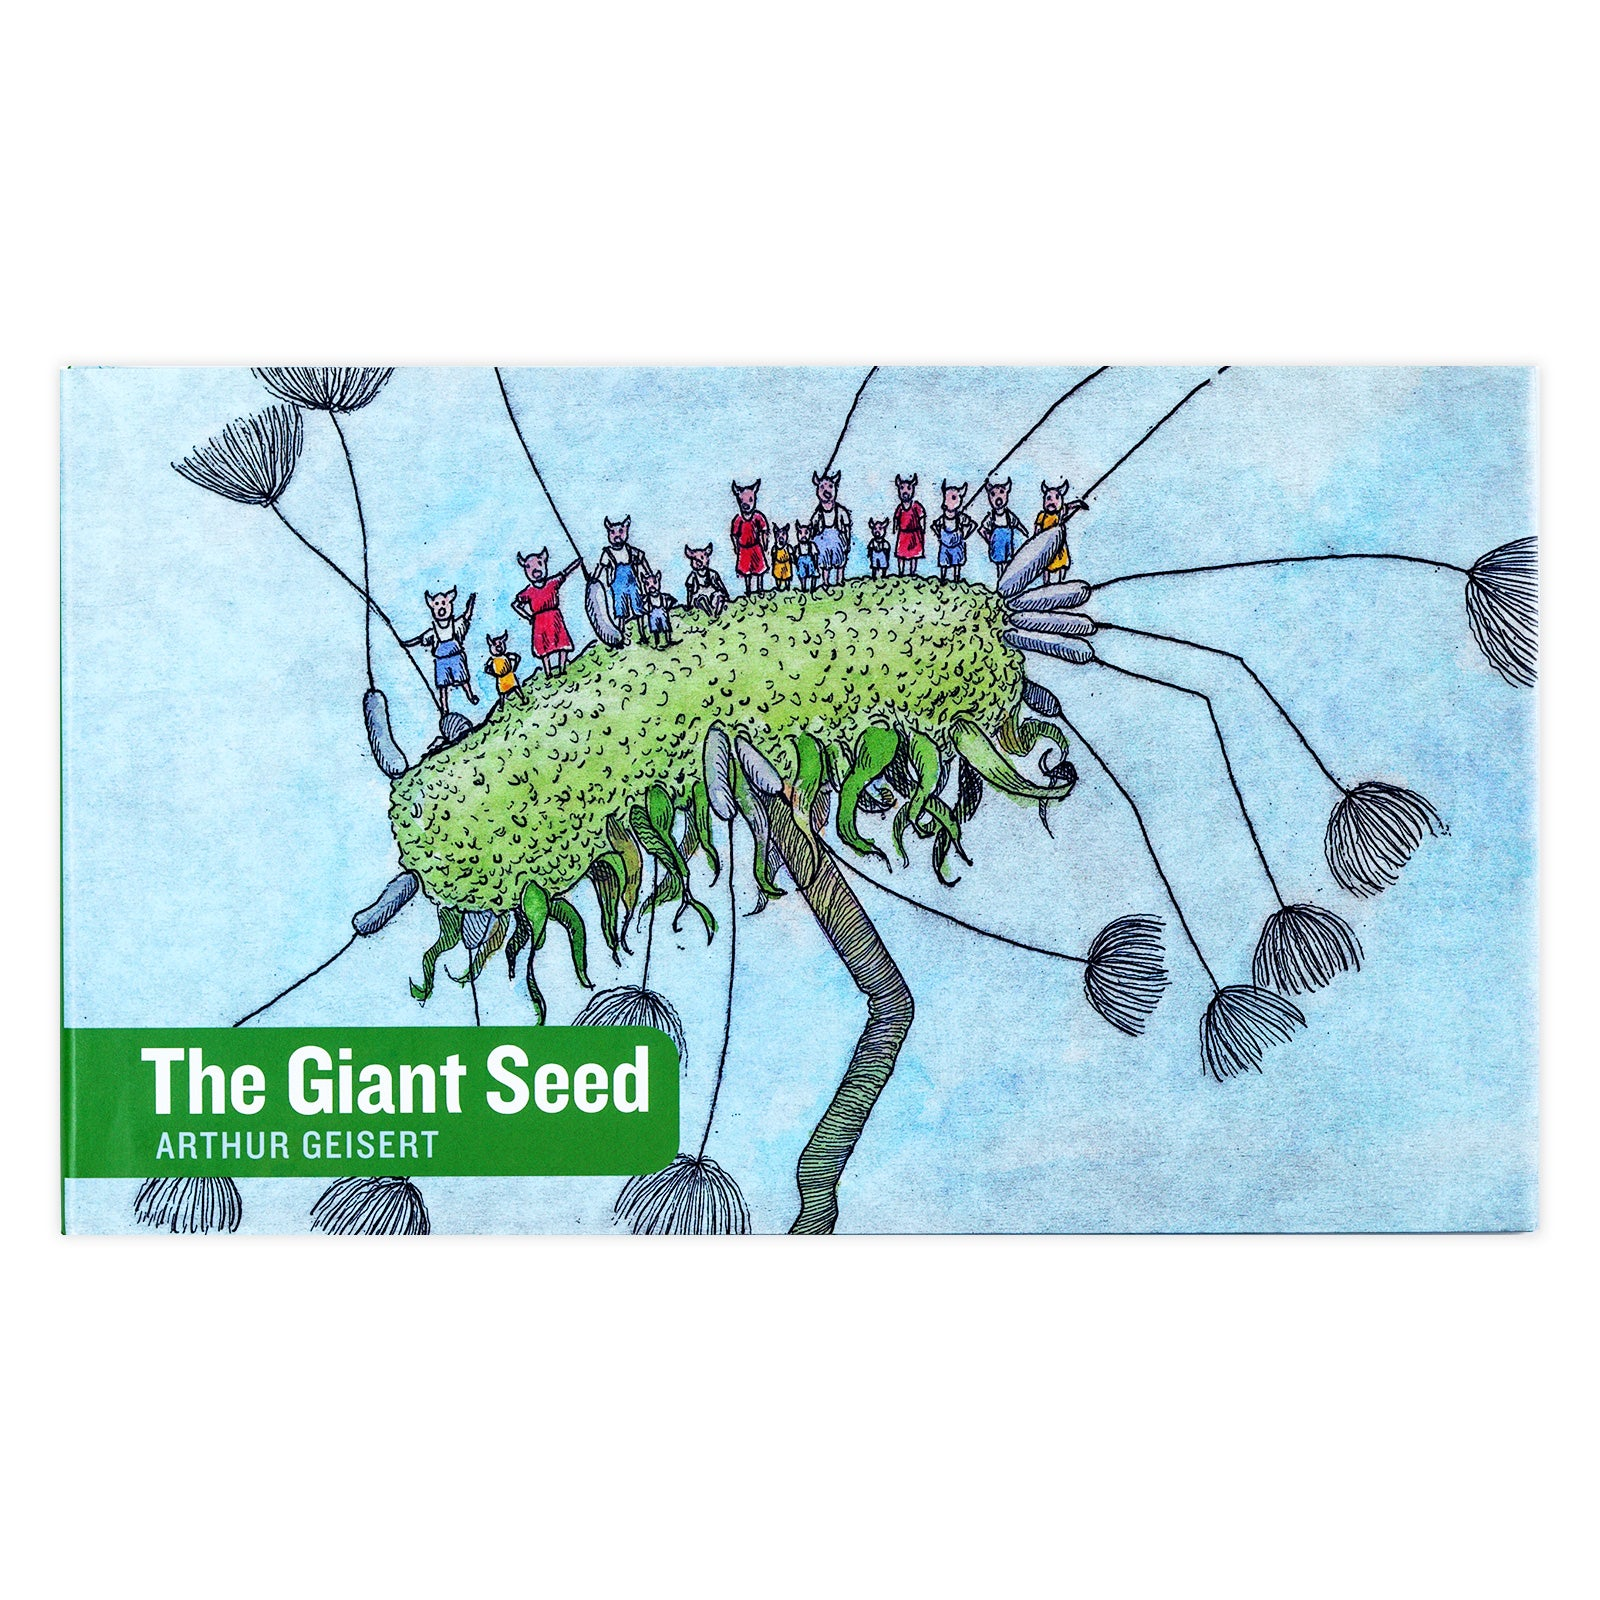 The Giant Seed, Book, Ingram - LIESAS